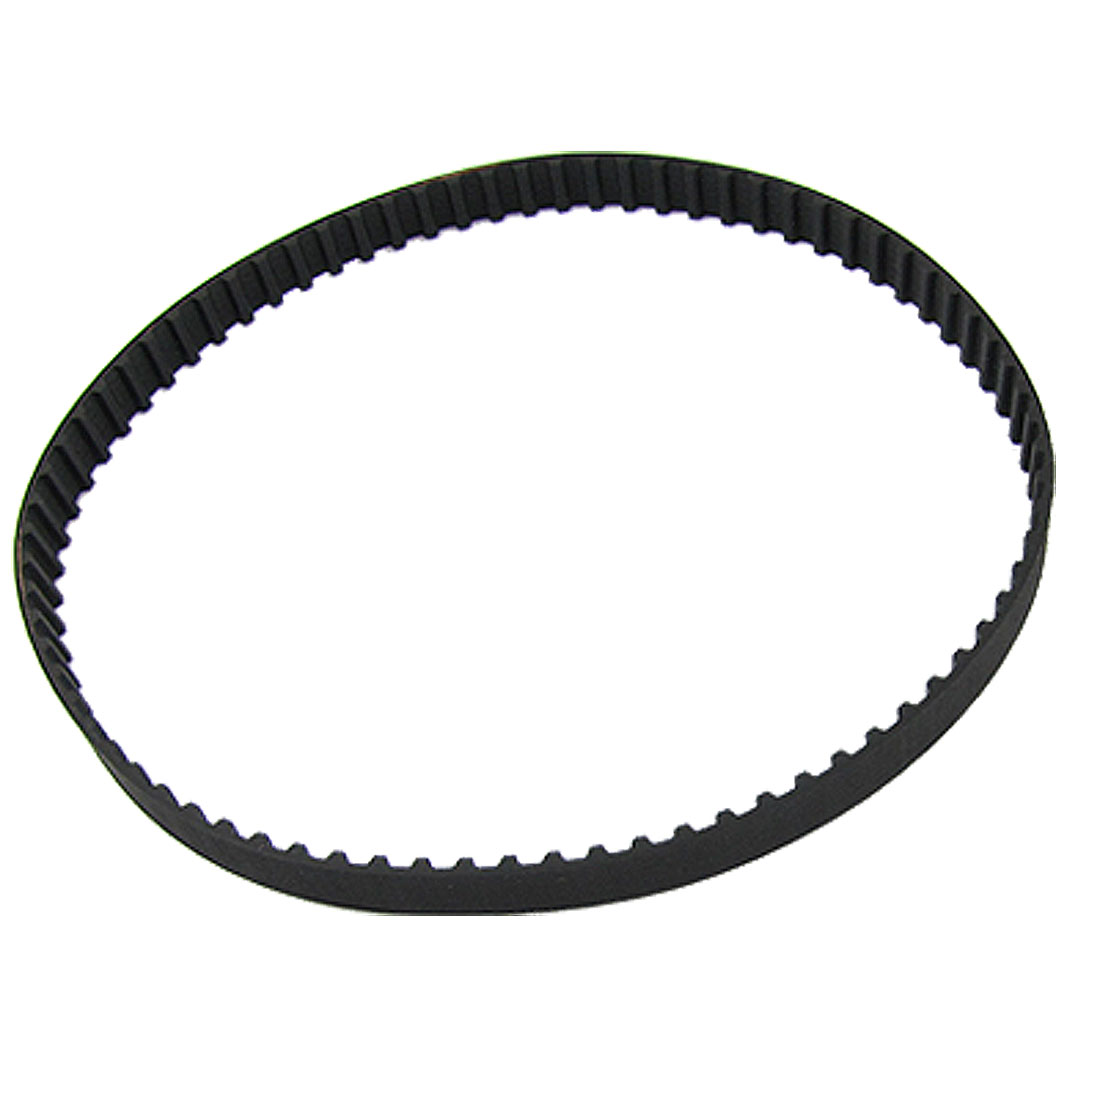 154XL 10mm Width 5.08mm Pitch Black Industrial Drive Timing Belt